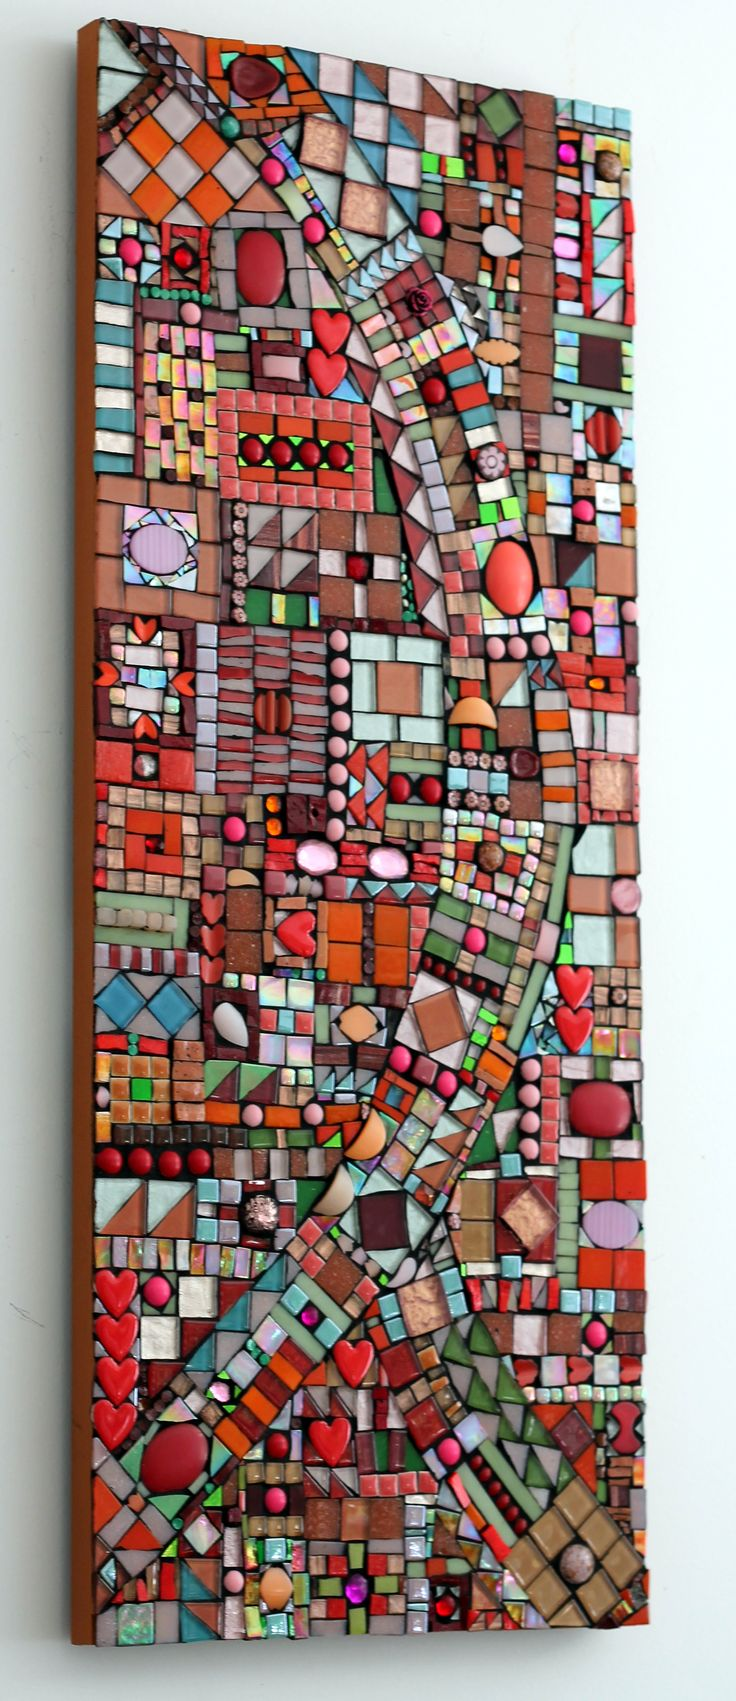 """Checkered Path"".by Ariel Shoemaker. Creative mosaic, diy, home decor, artwork, colorful, professional"